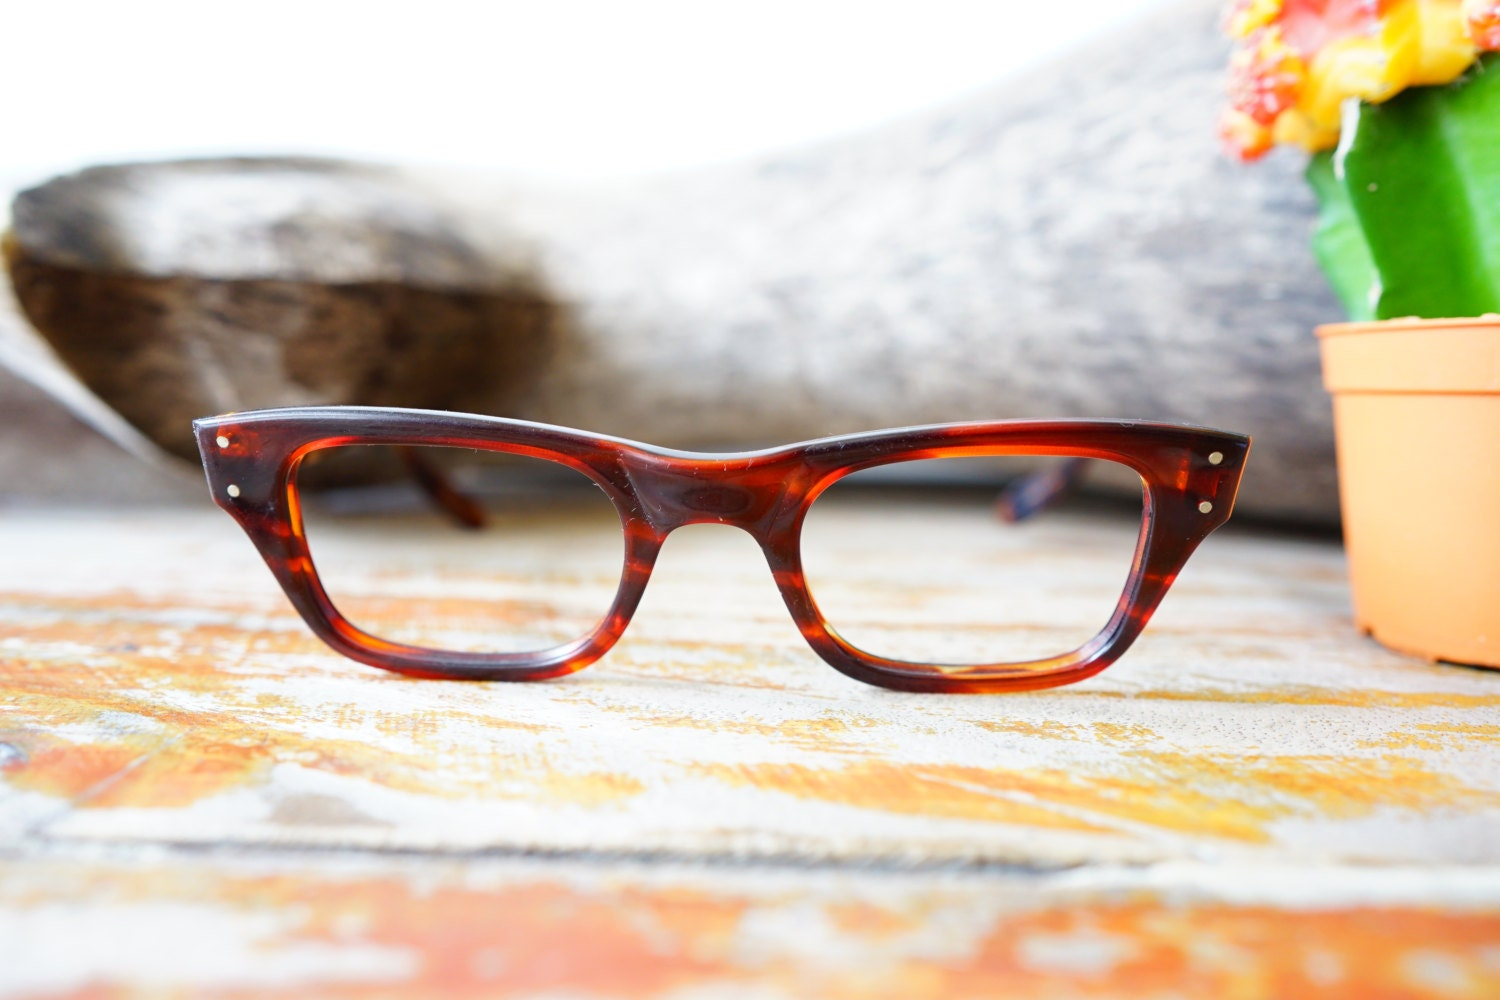 f5677d3315 Vintage Eyeglass 1950 s Frames By Bausch And Lomb Nos Made In Usa 46-22  Great